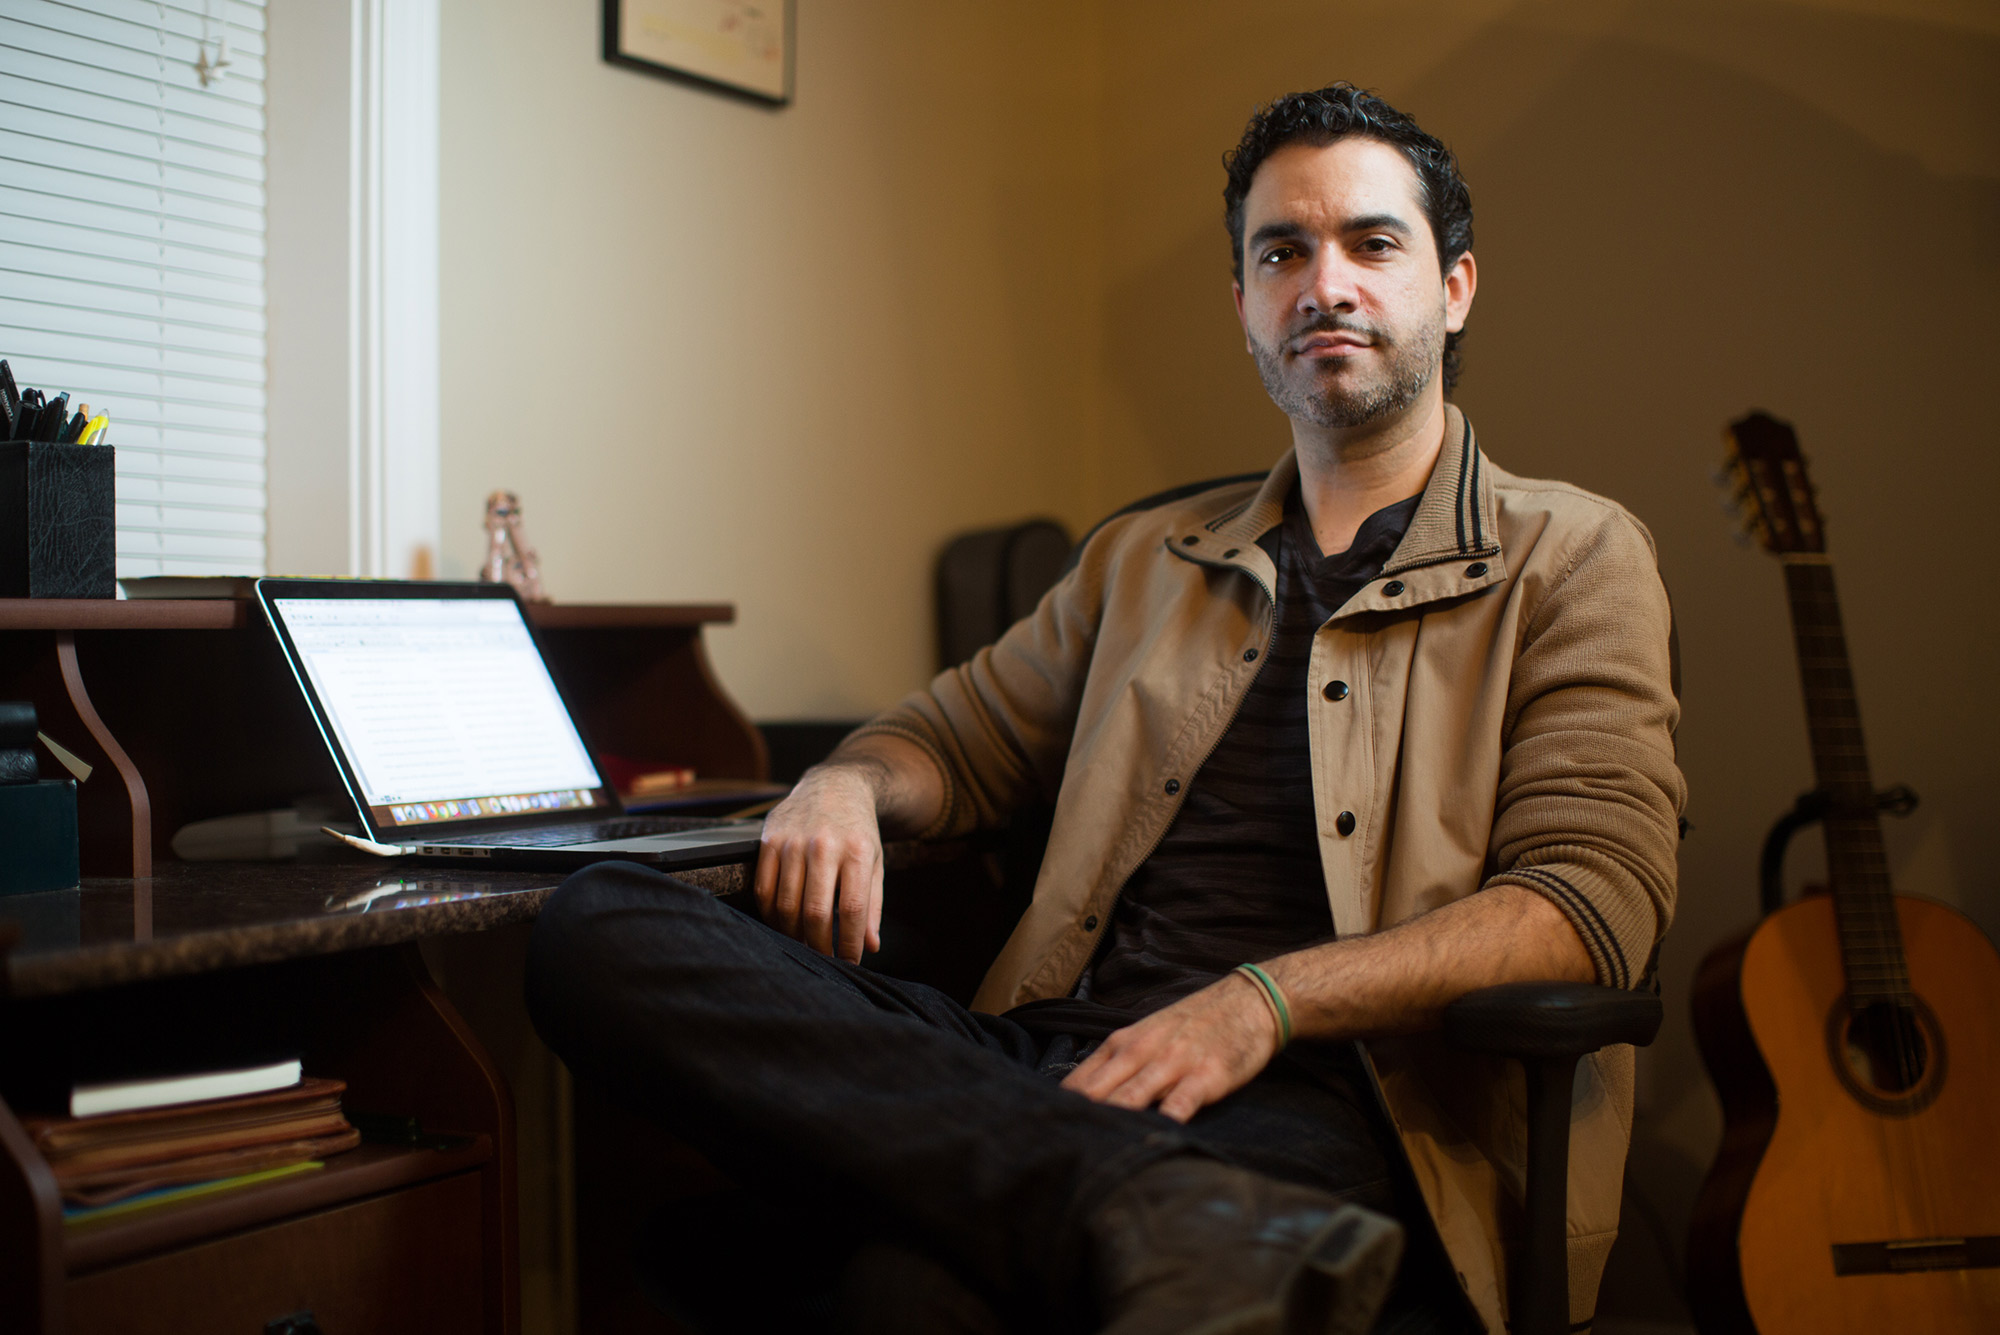 Writer and novelist Dariel Suarez (CFA'12) sits in his office with his laptop open on a desk behind him.